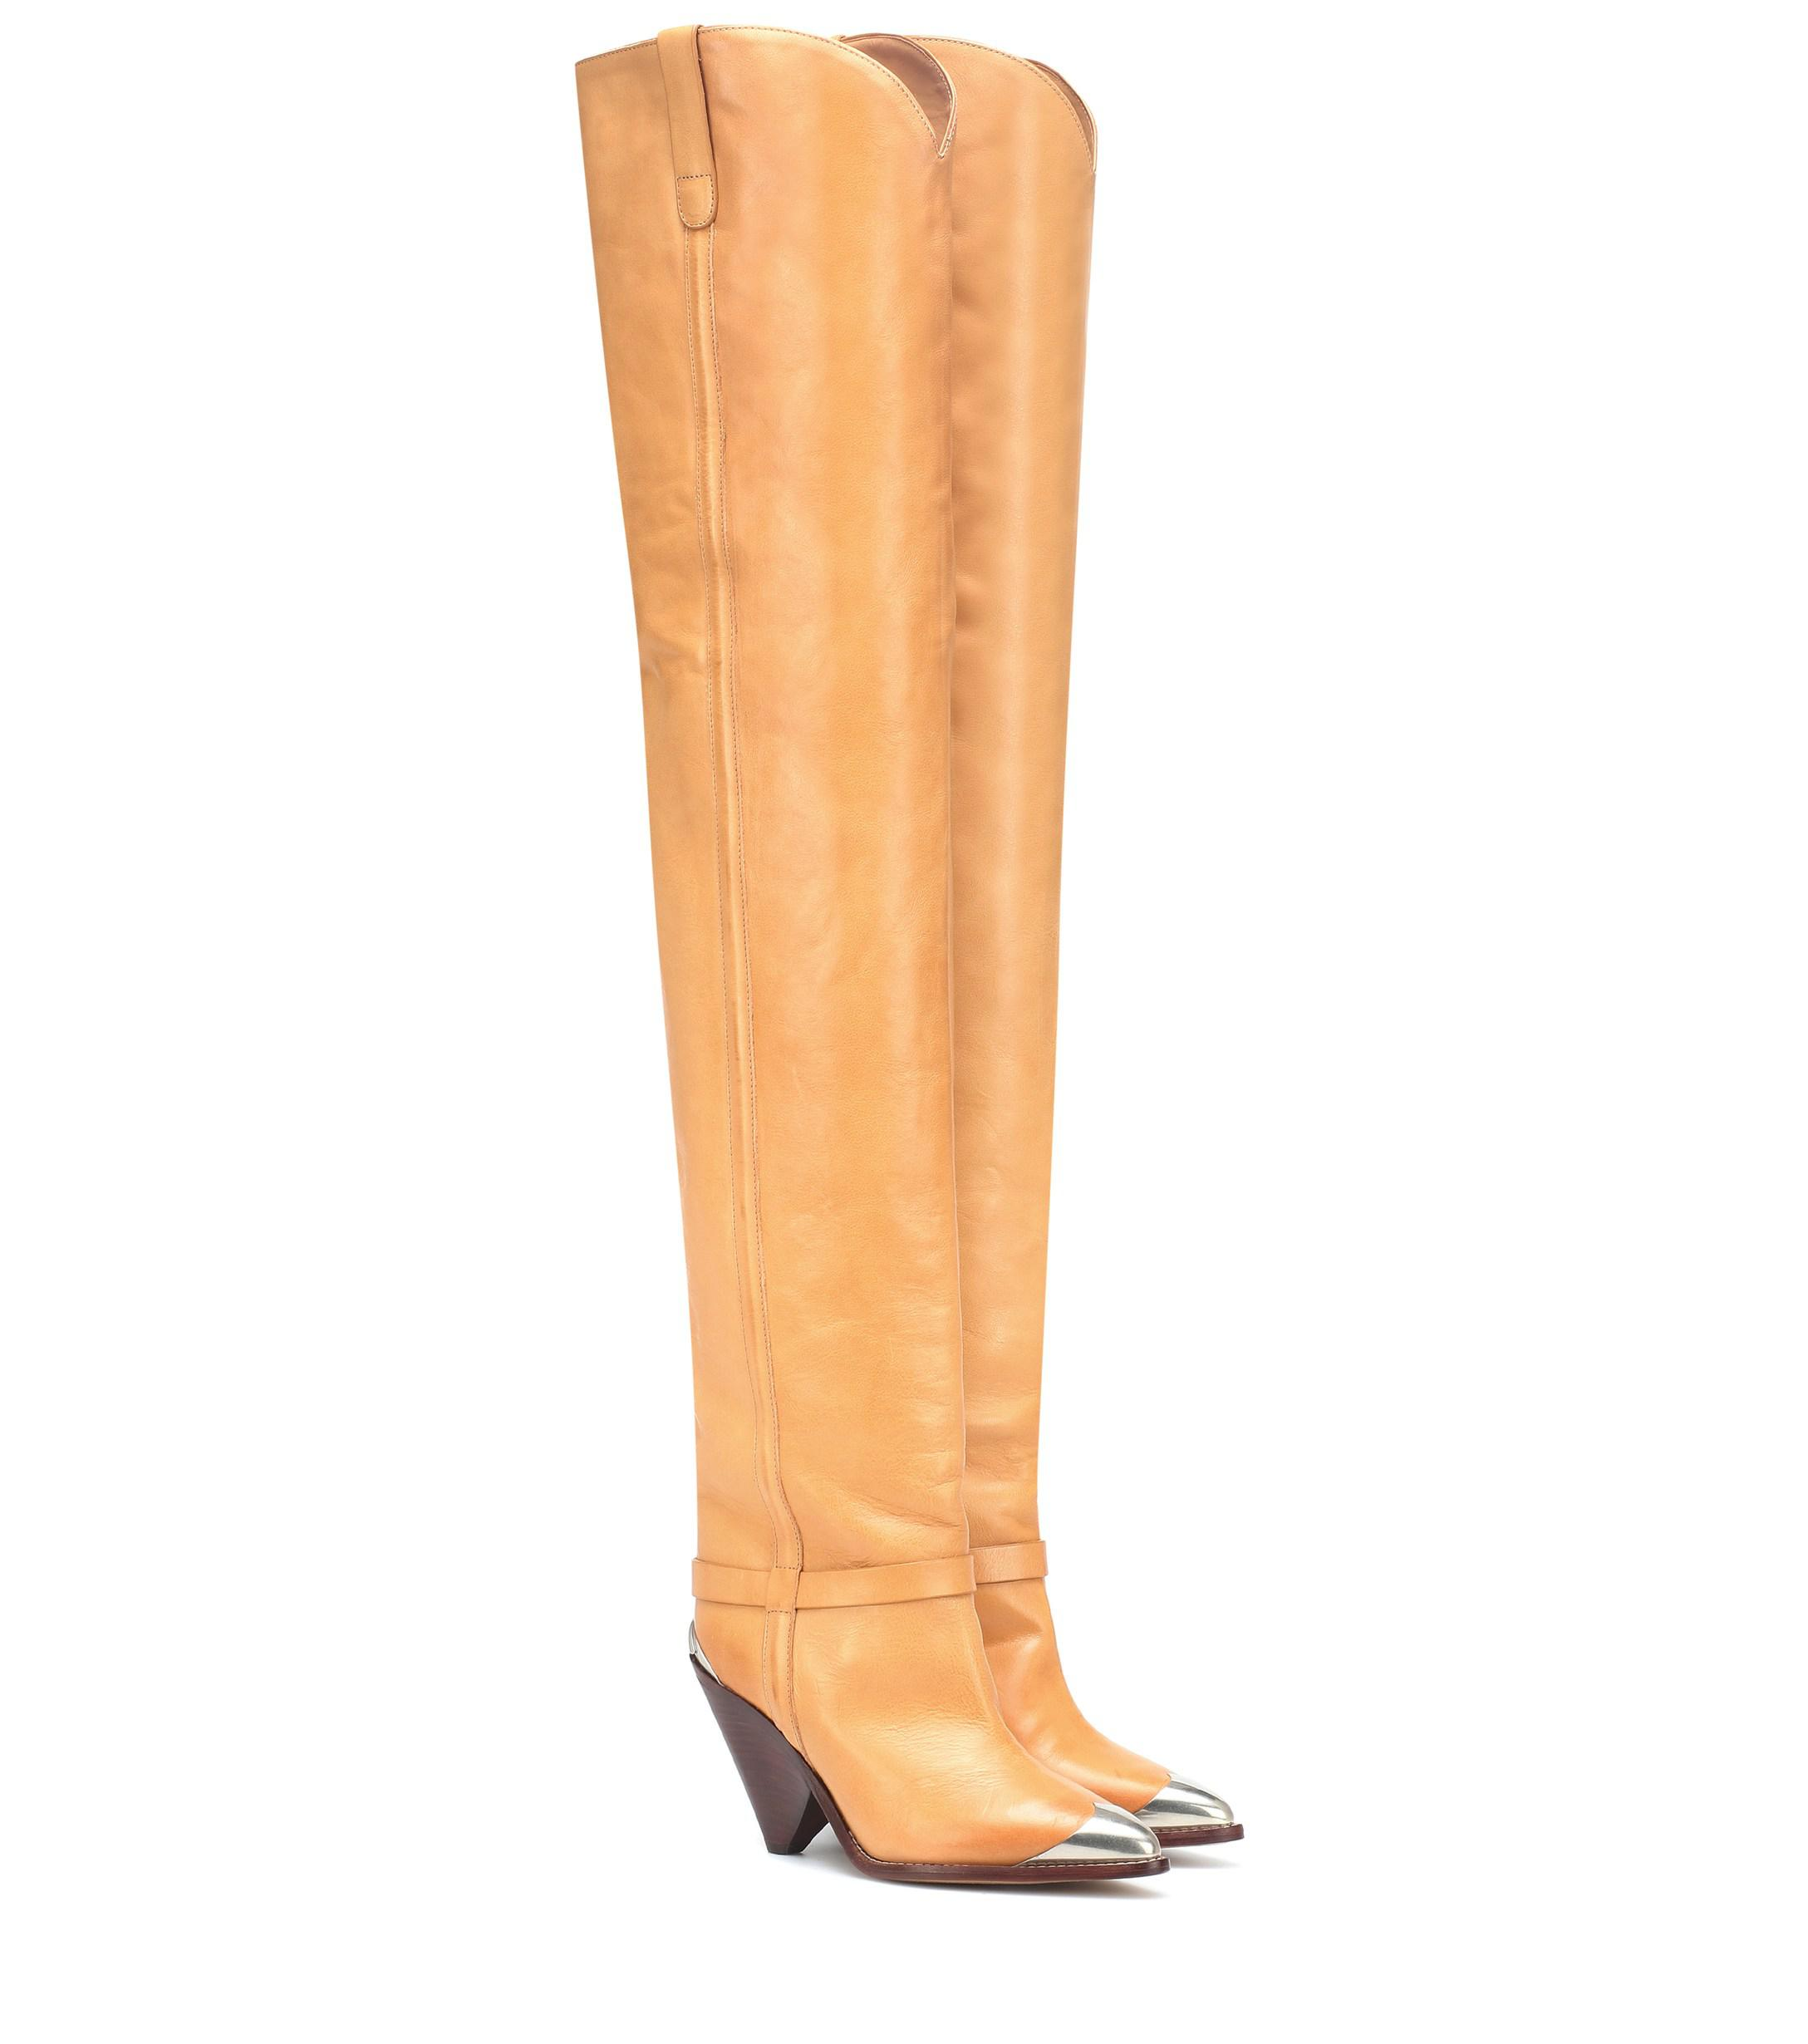 720b22b66d1 Lyst - Isabel Marant Lafsten Over-the-knee Boots in Natural